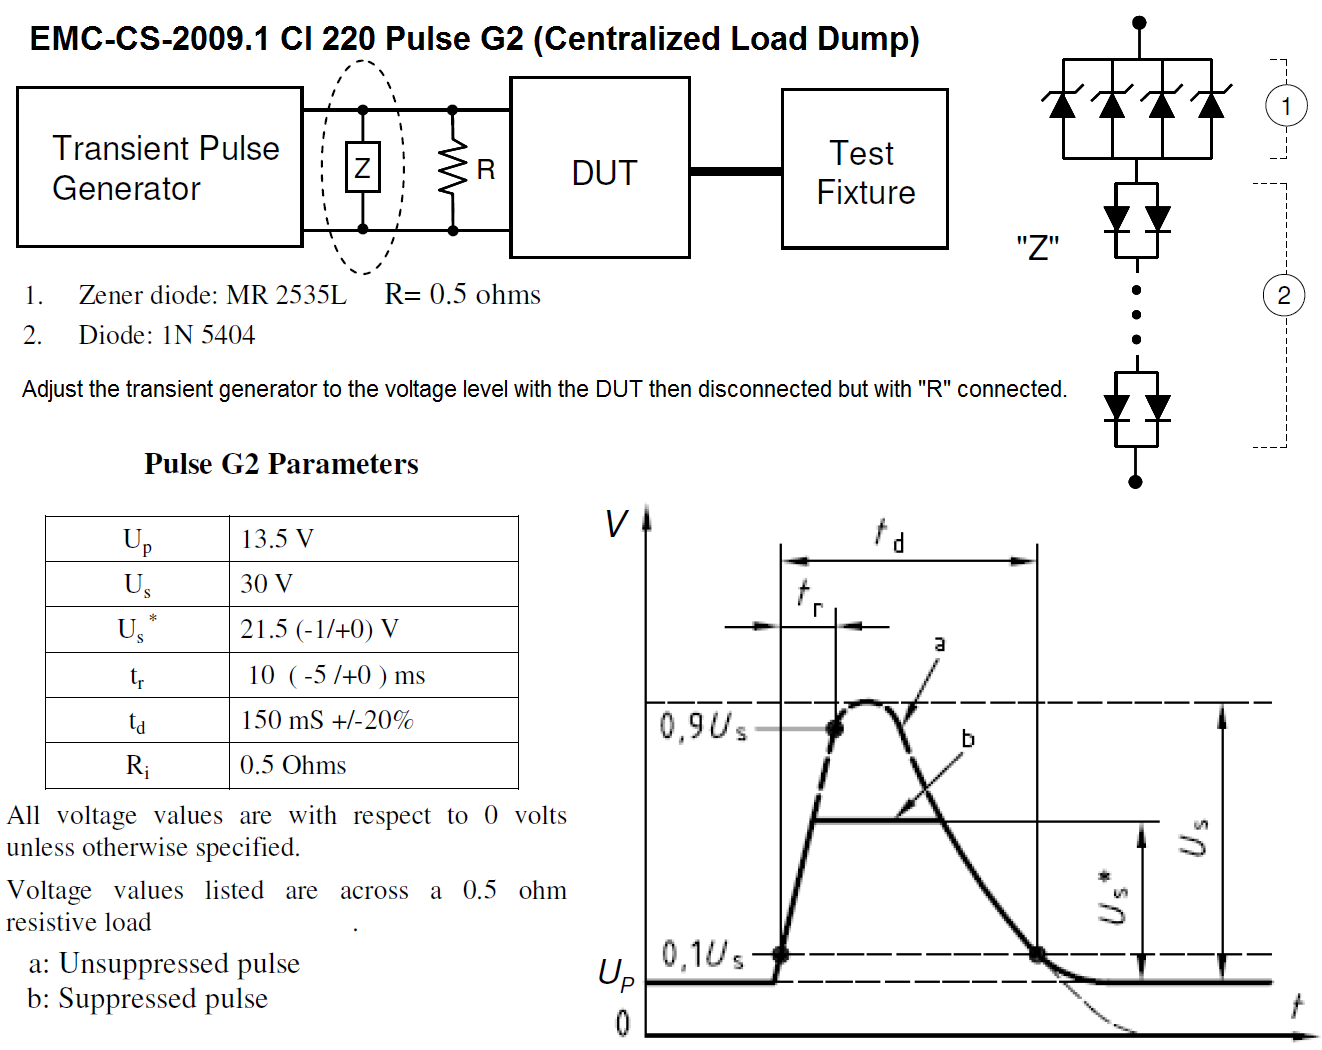 Emc Ev Automotive Centralized Load Dump Test Requirements Pulse Generating Circuit Fmc1278 Rev 2 Ci 222 Suppressed 5b